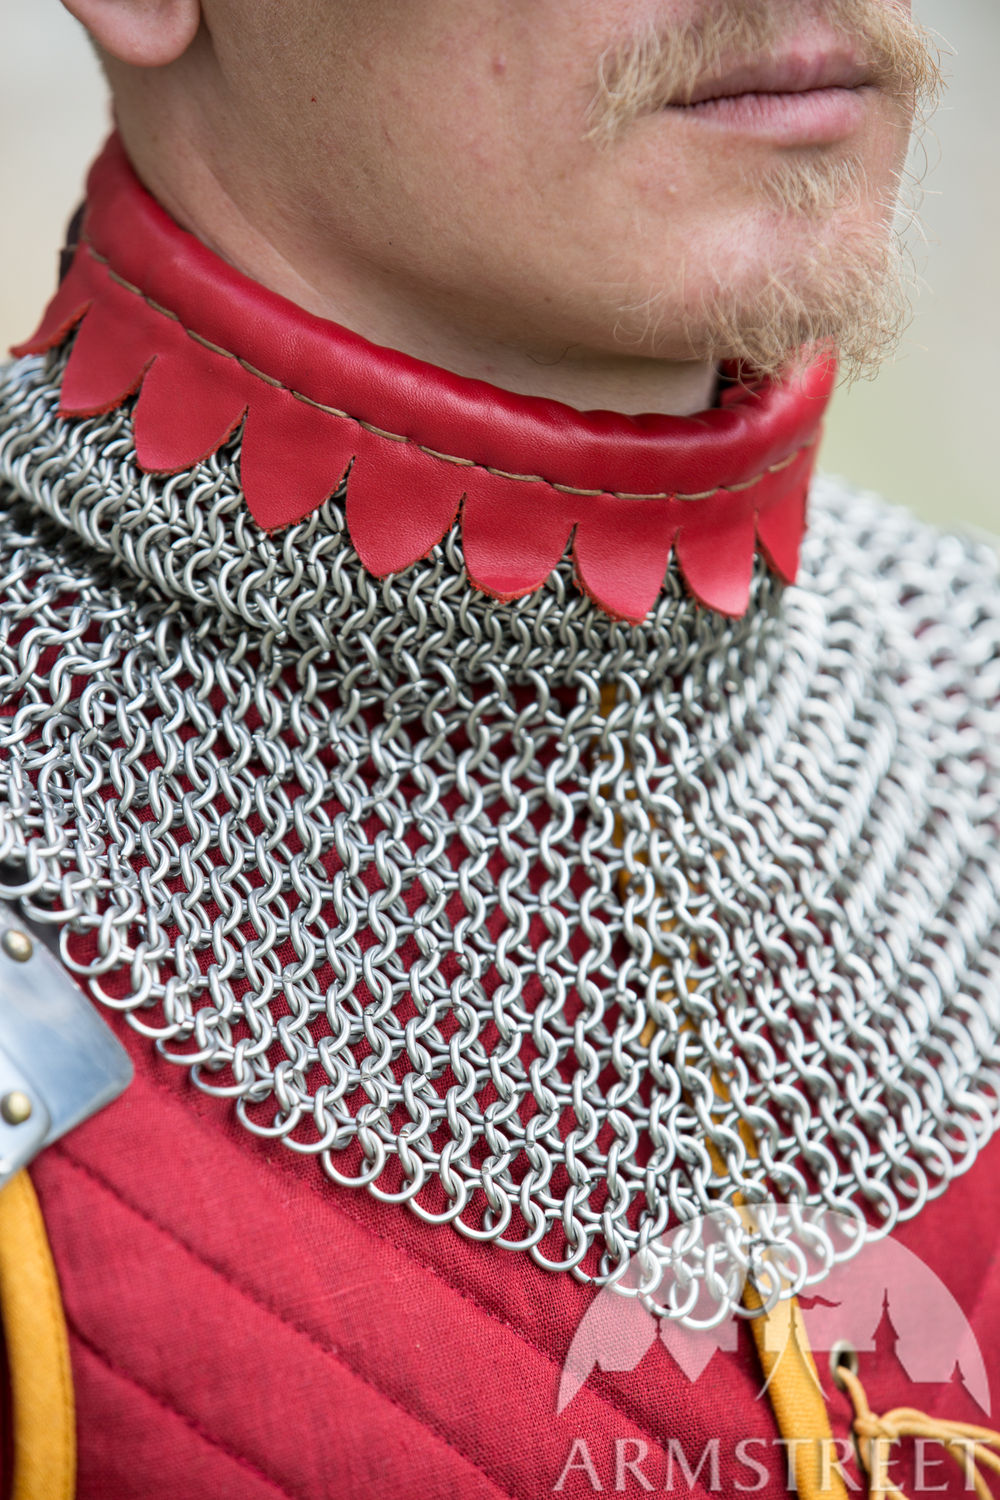 Stainless steel chainmail gorget decorated with leather accents